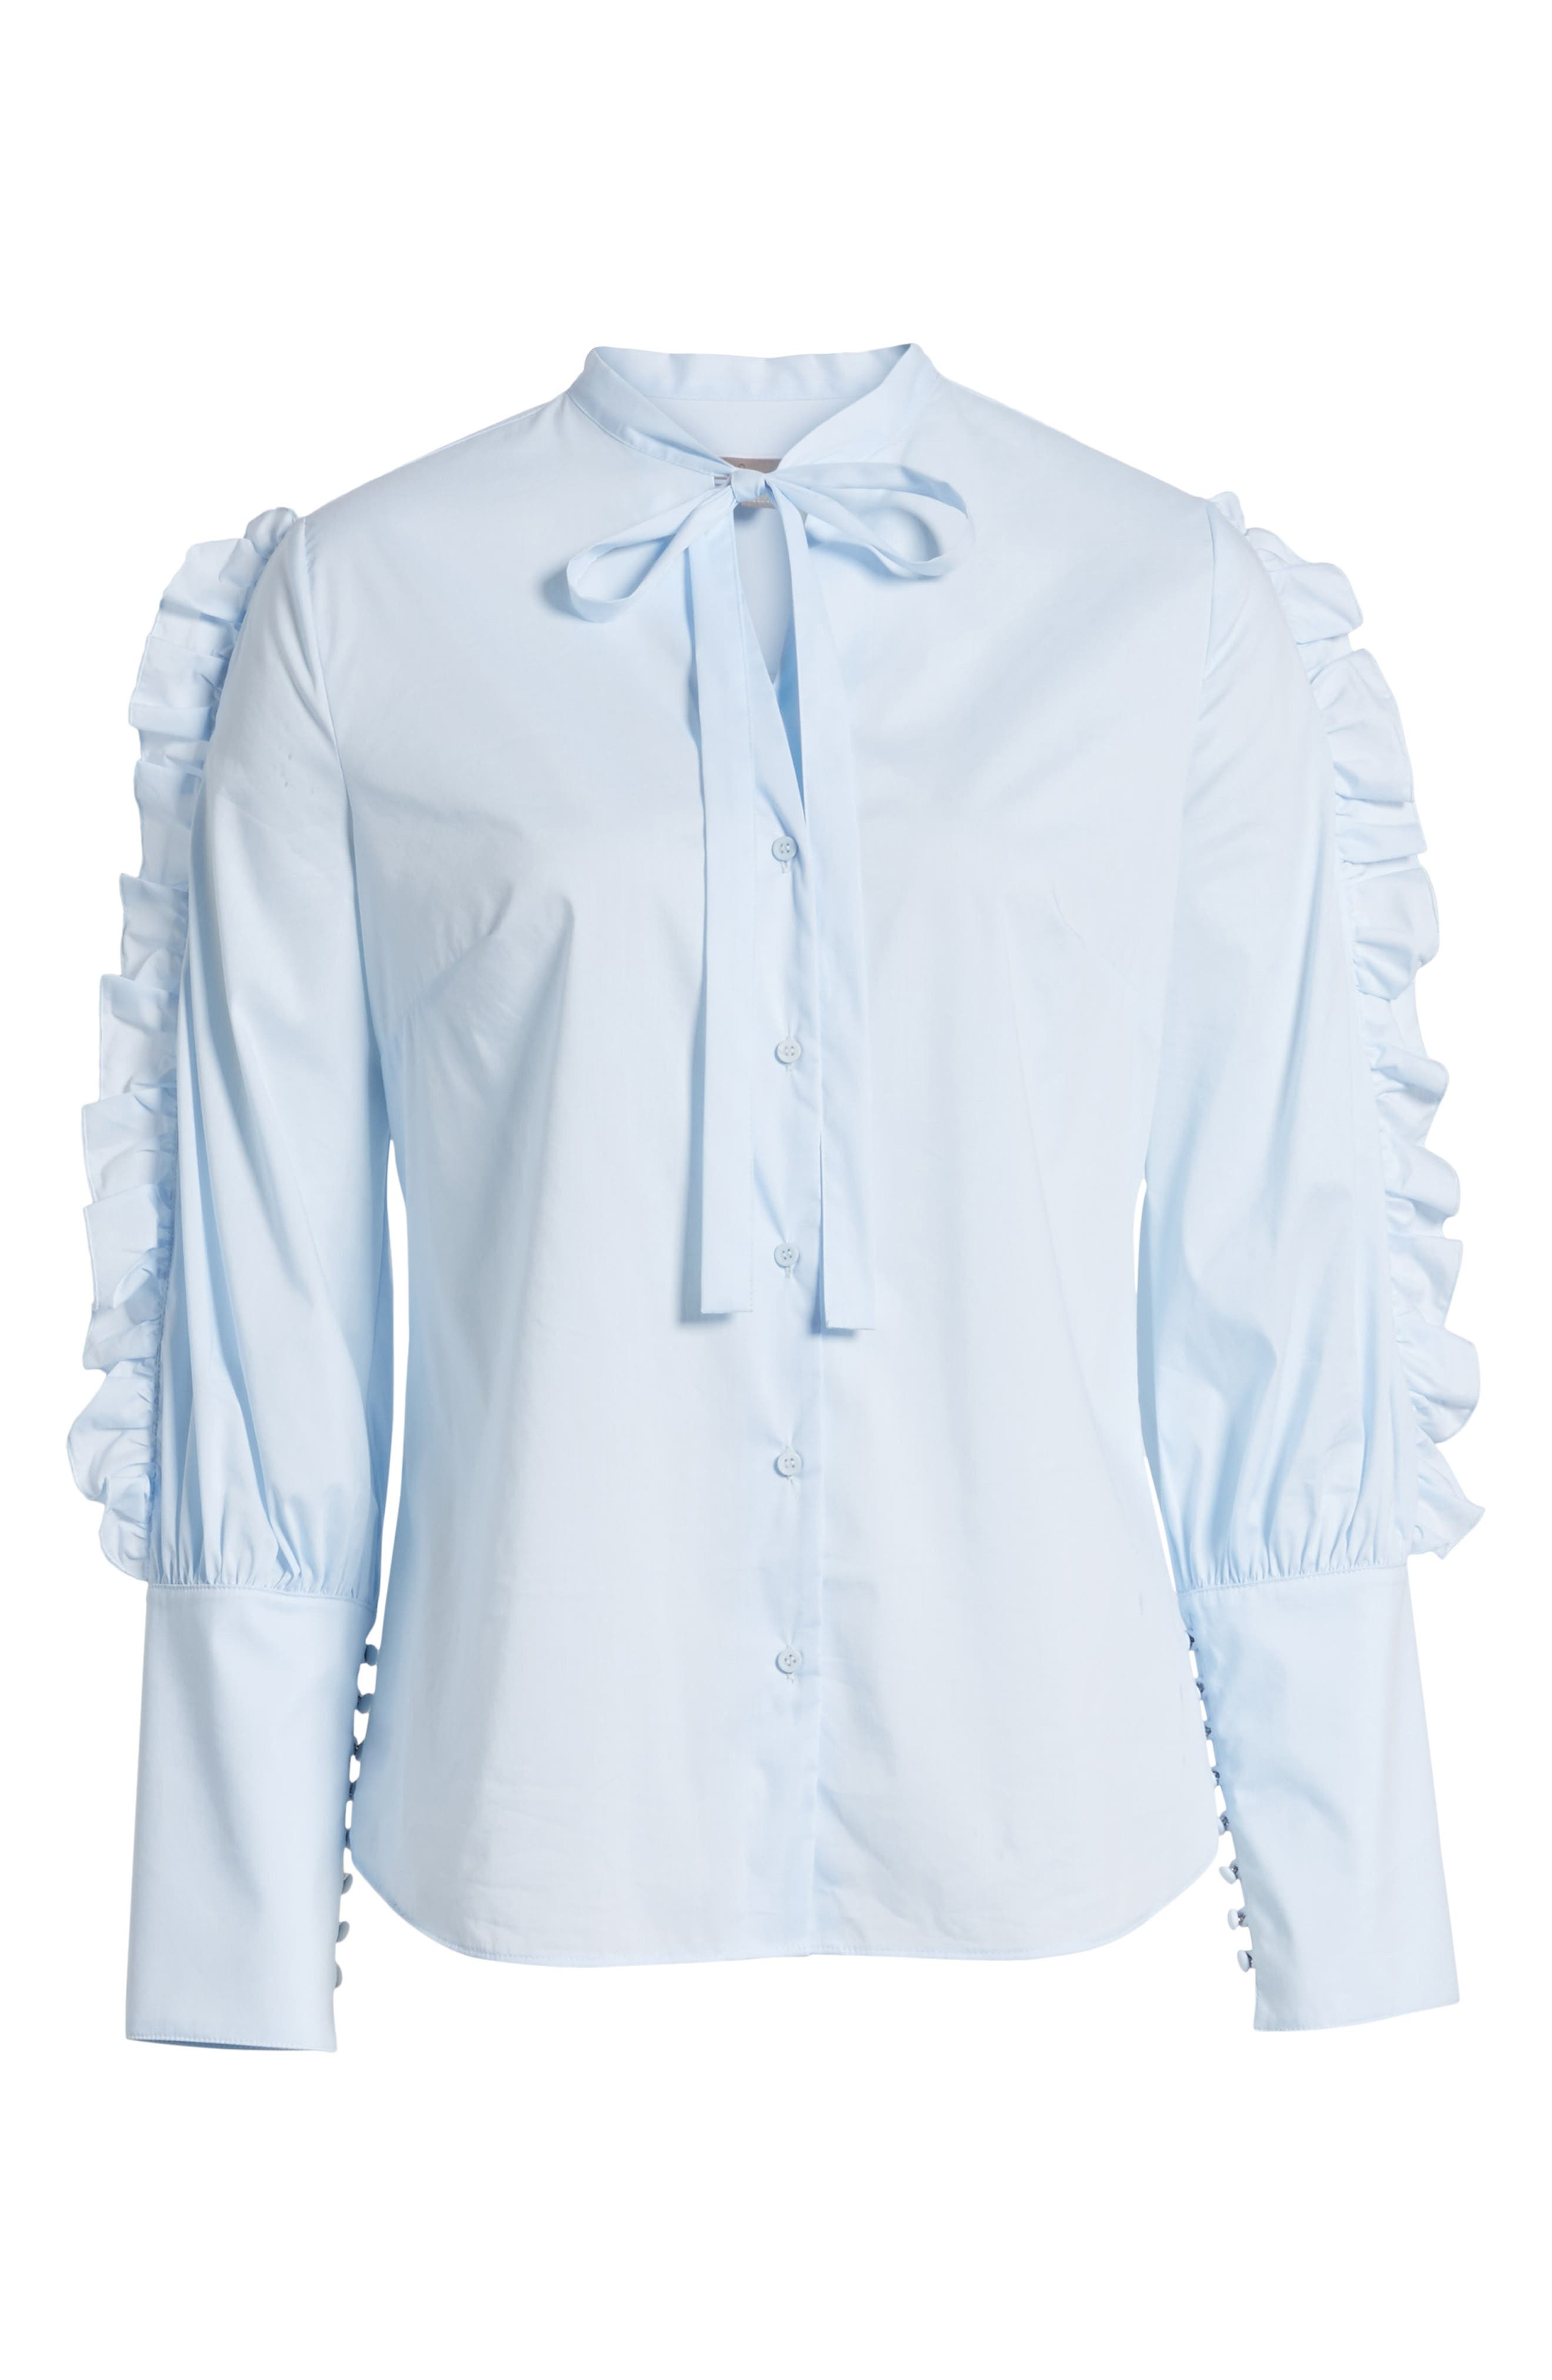 Ruffle Sleeve Poplin Blouse,                             Alternate thumbnail 6, color,                             450